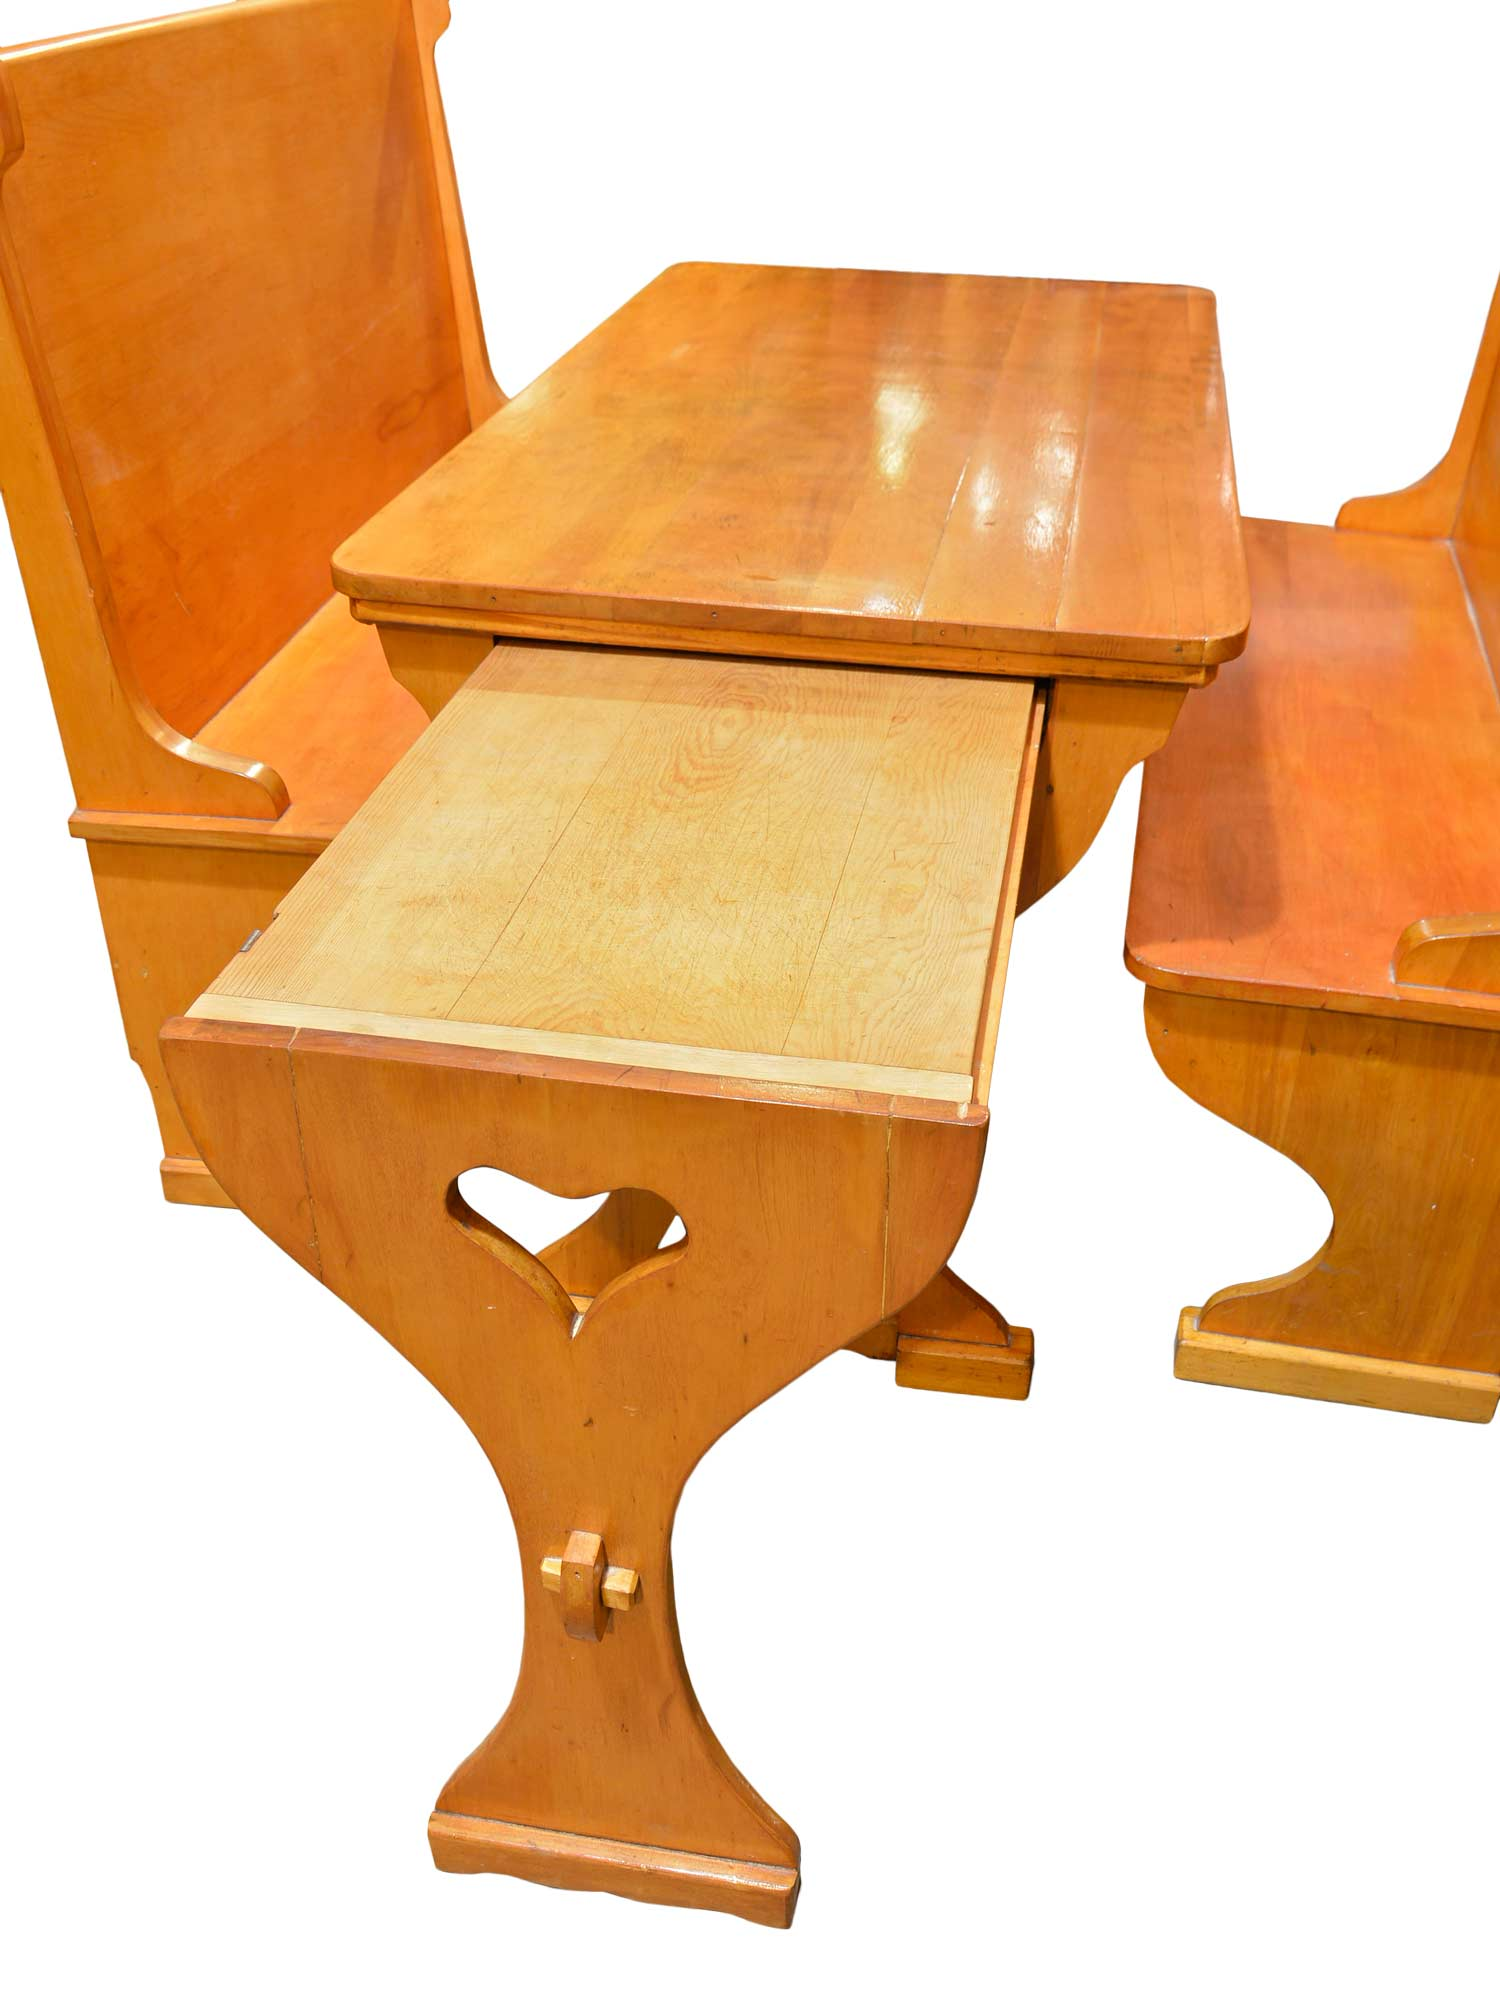 46043-maple-breakfast-nook-with-pull-out-table-cutting-board.jpg